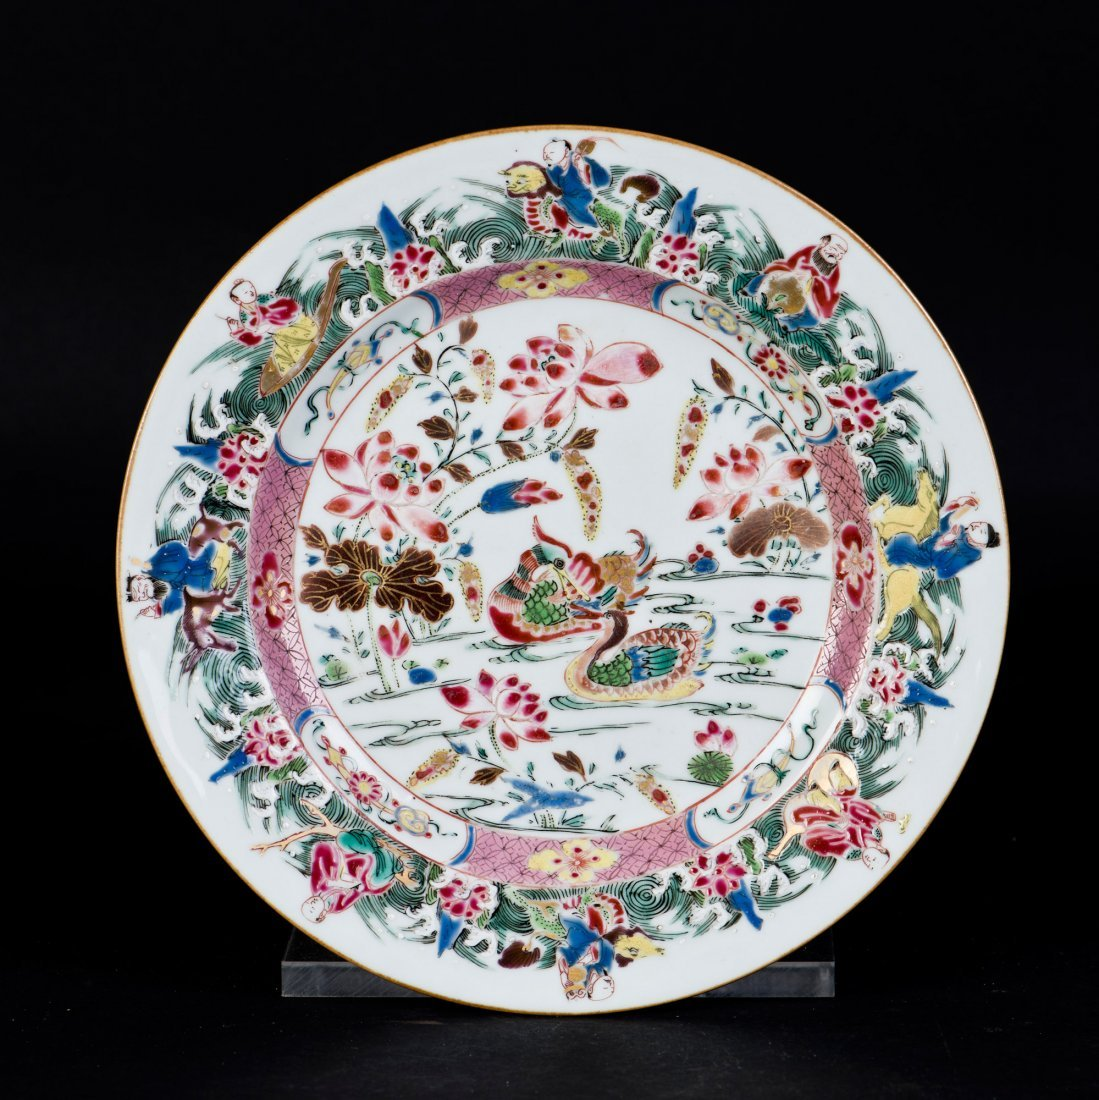 A FAMILLE ROSE PORCELAIN PLATE, 18TH CENTURY